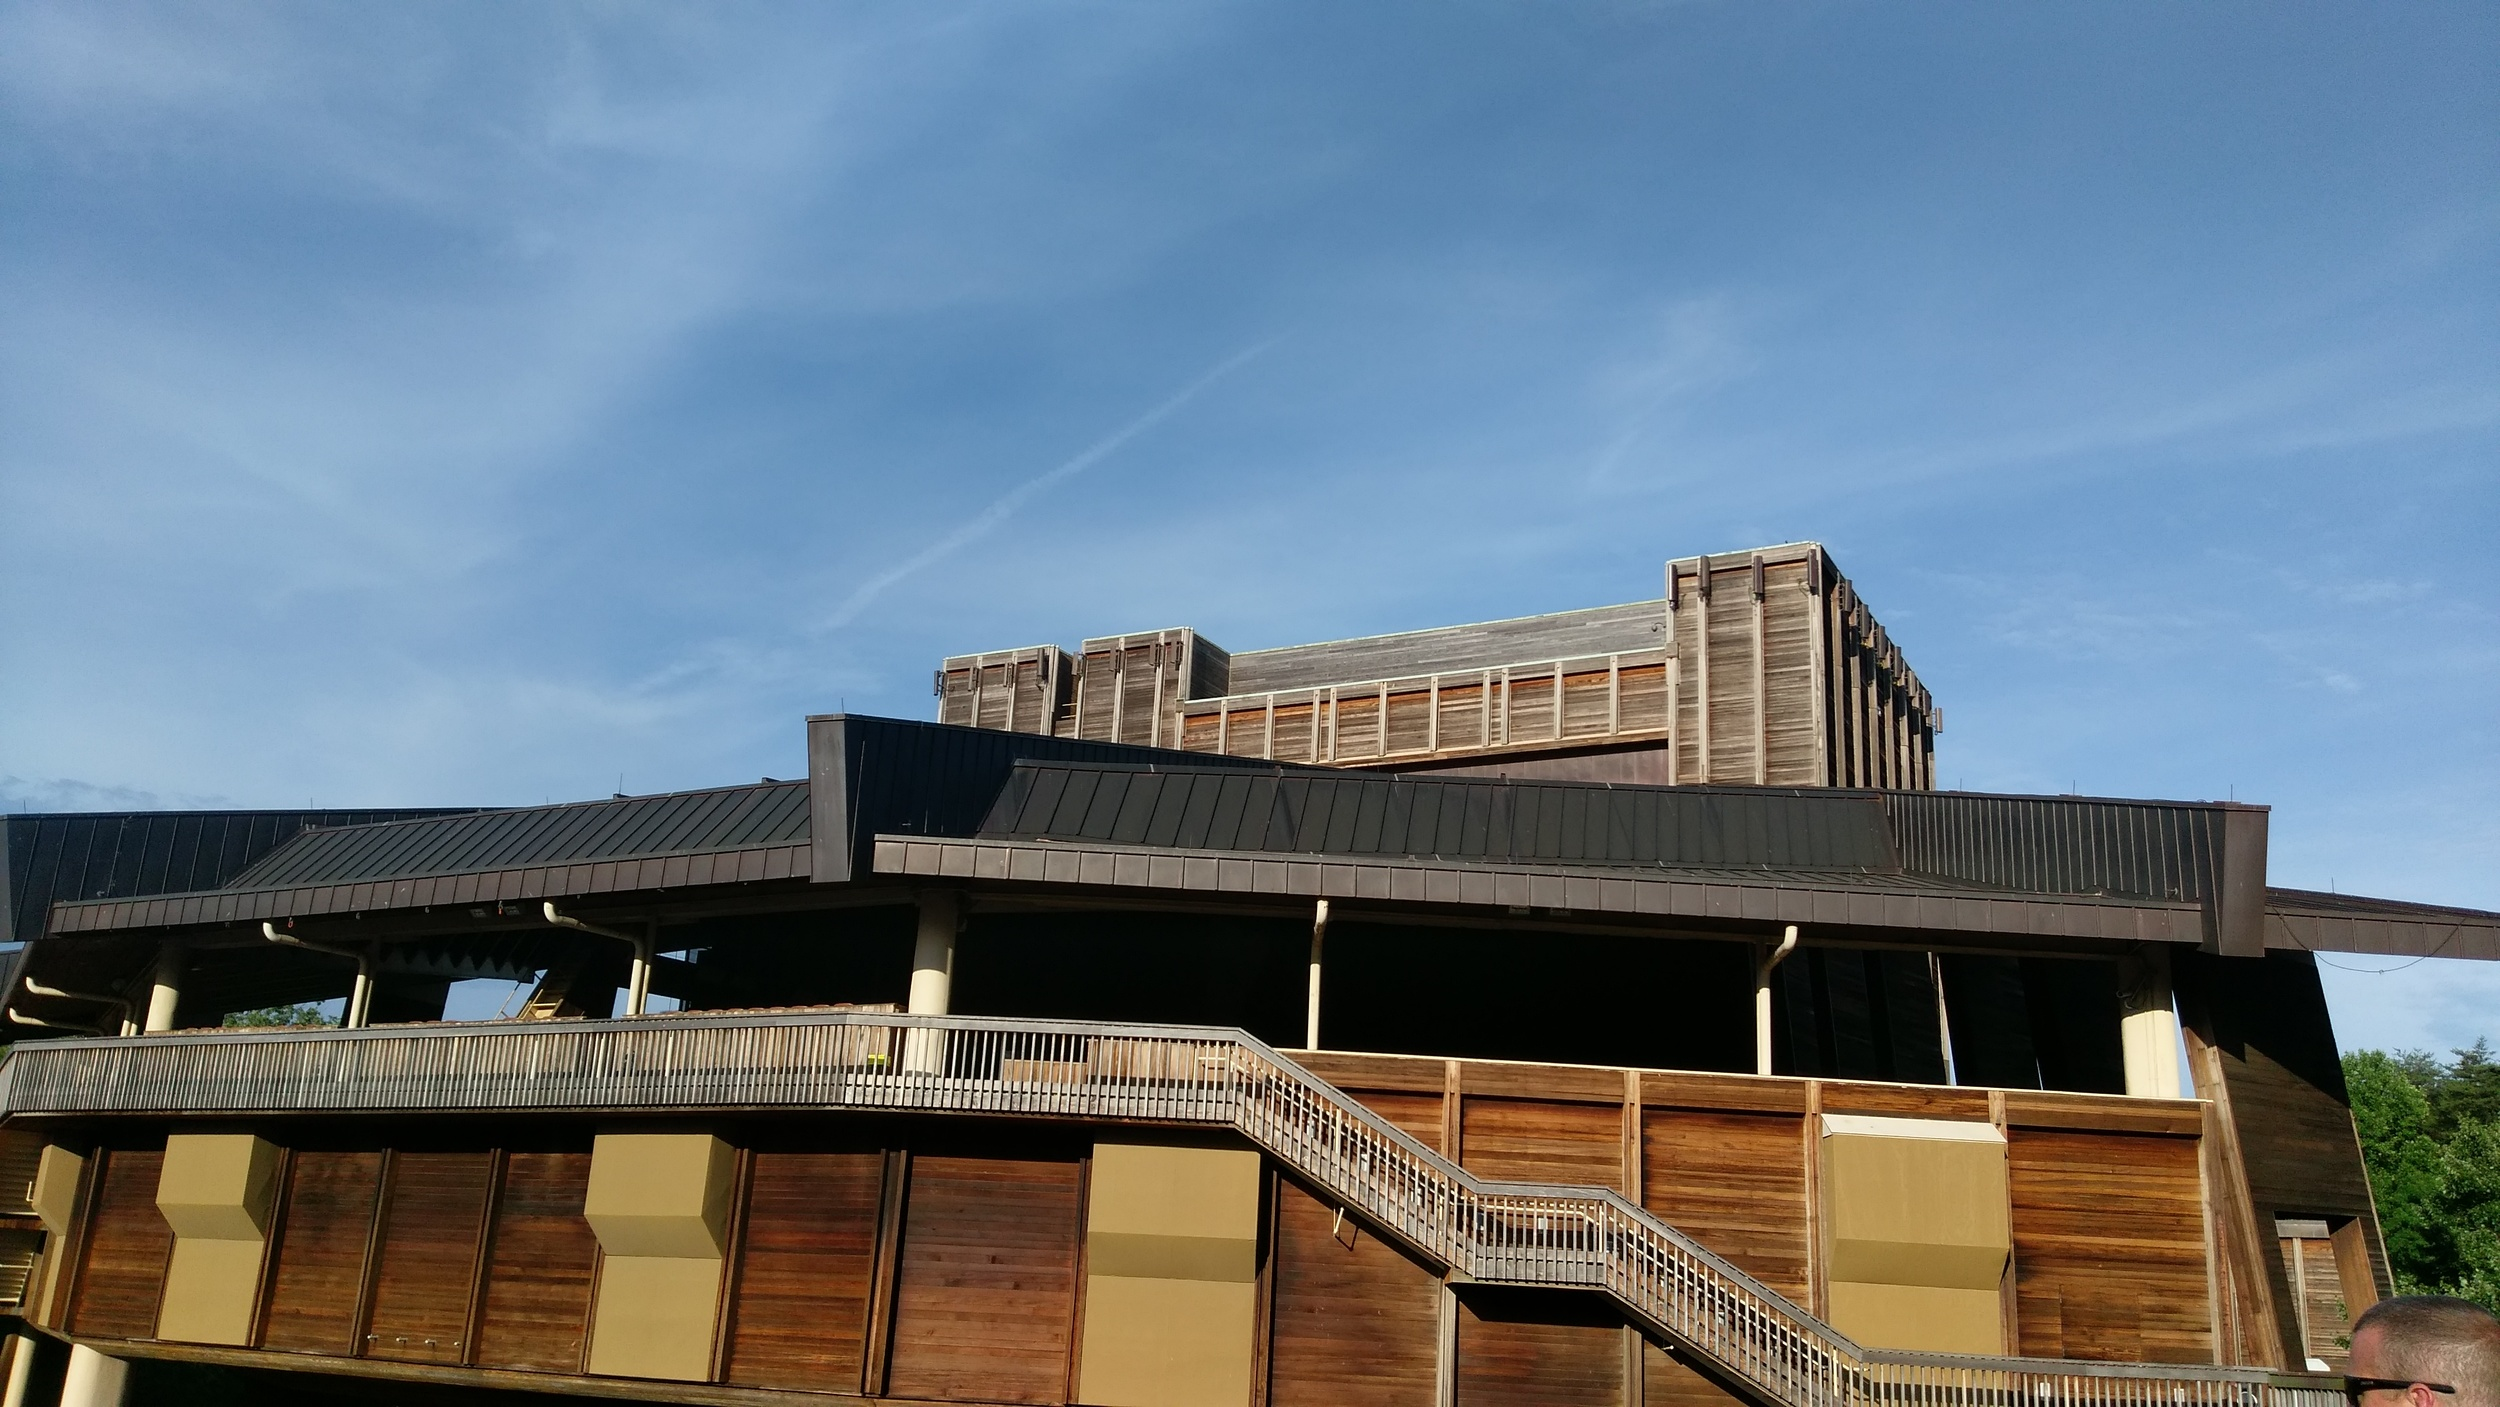 A beautiful day for a show (this is a shot of the pavilion).